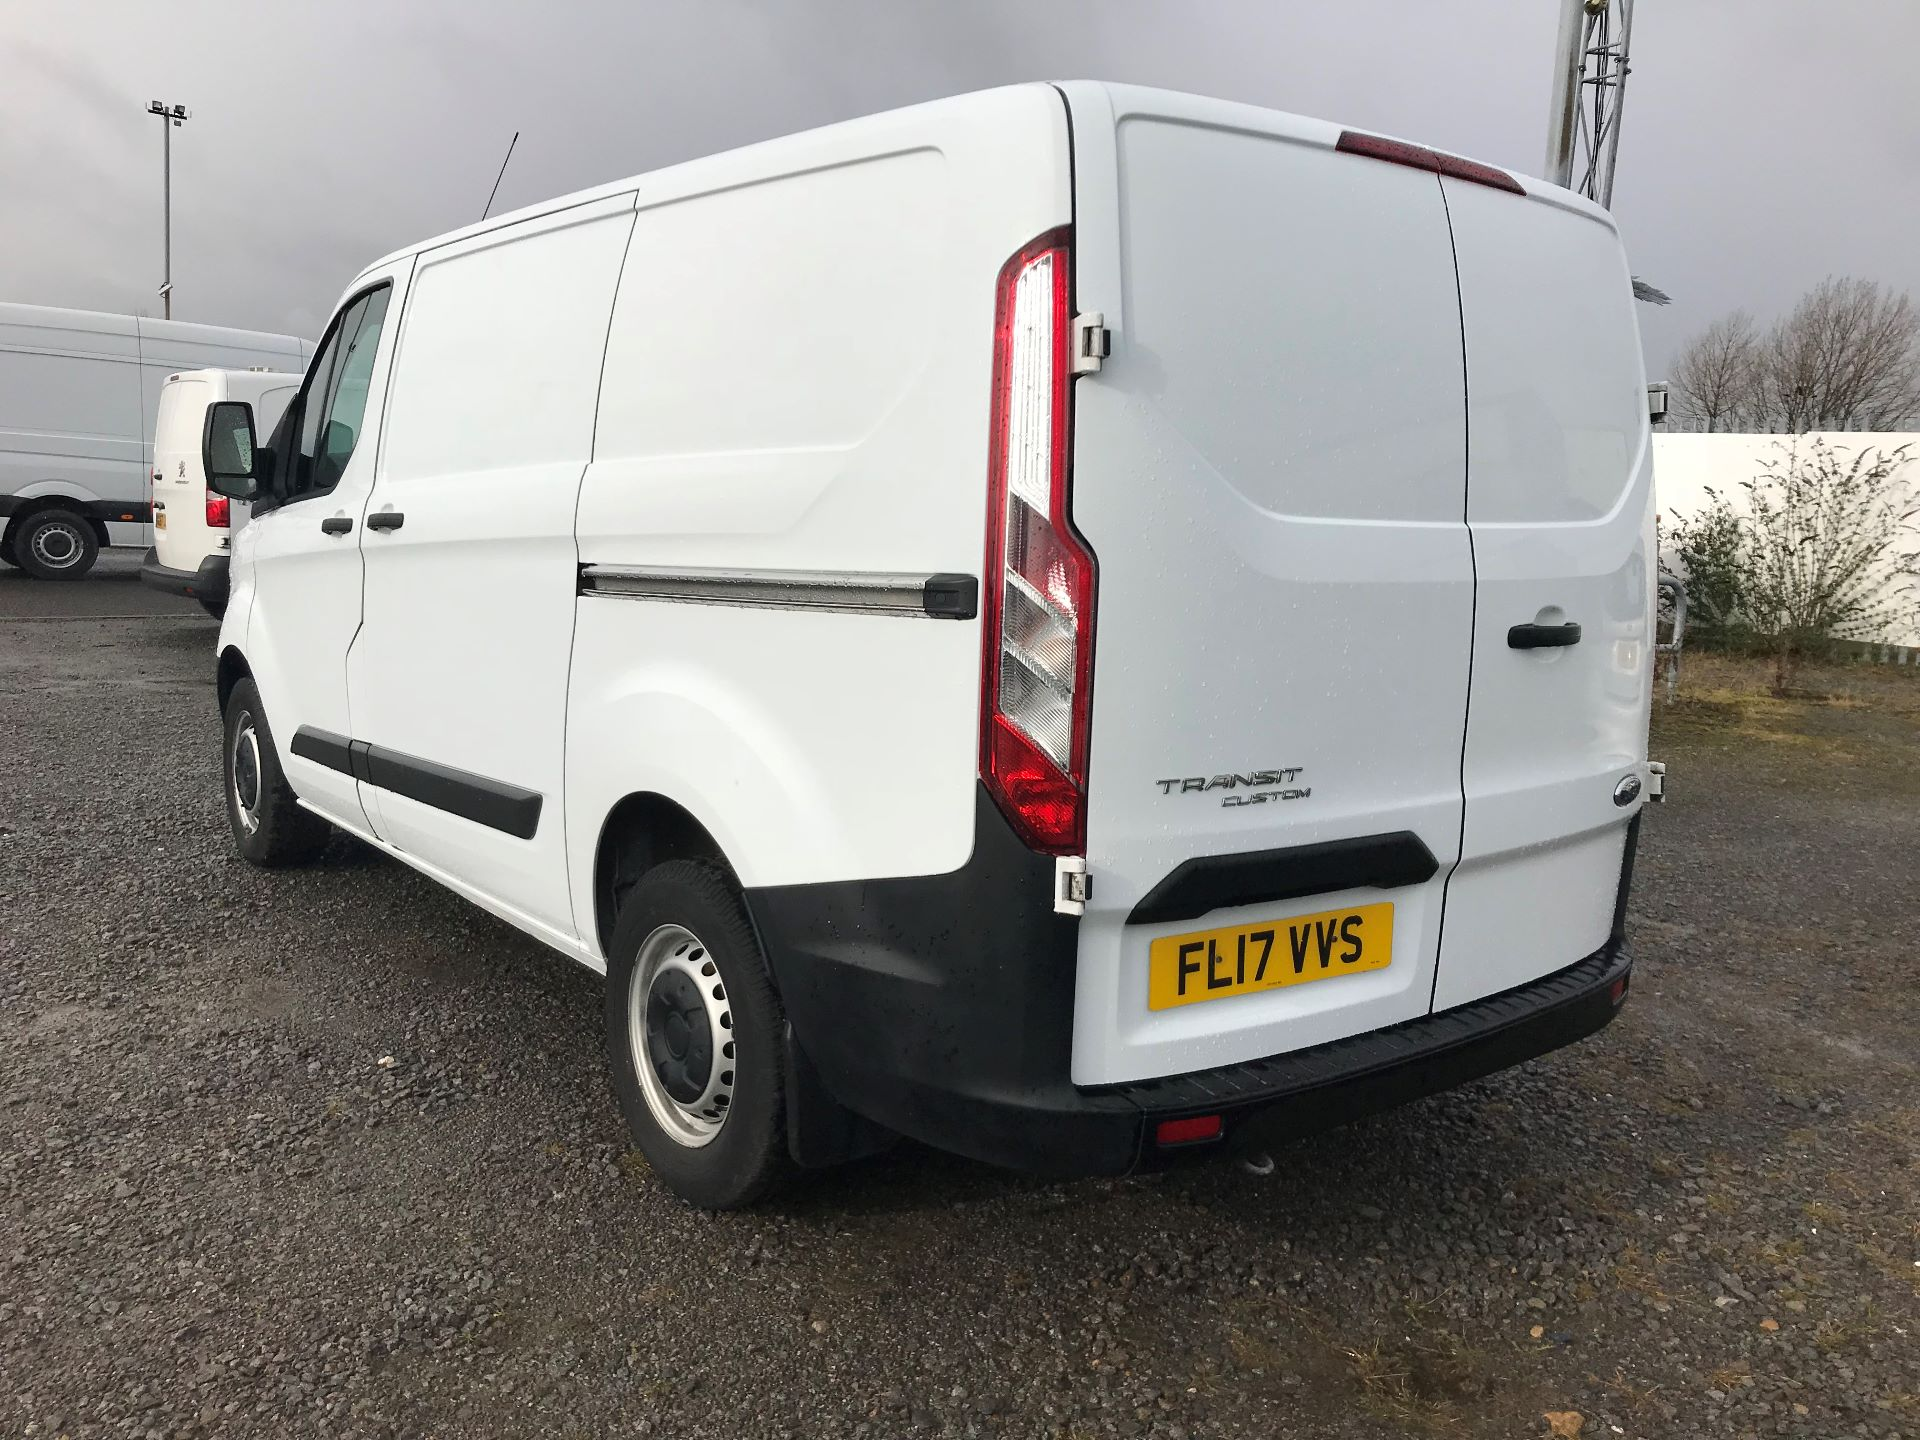 2017 Ford Transit Custom 2.0 Tdci 105Ps Low Roof Van (FL17VVS) Thumbnail 6